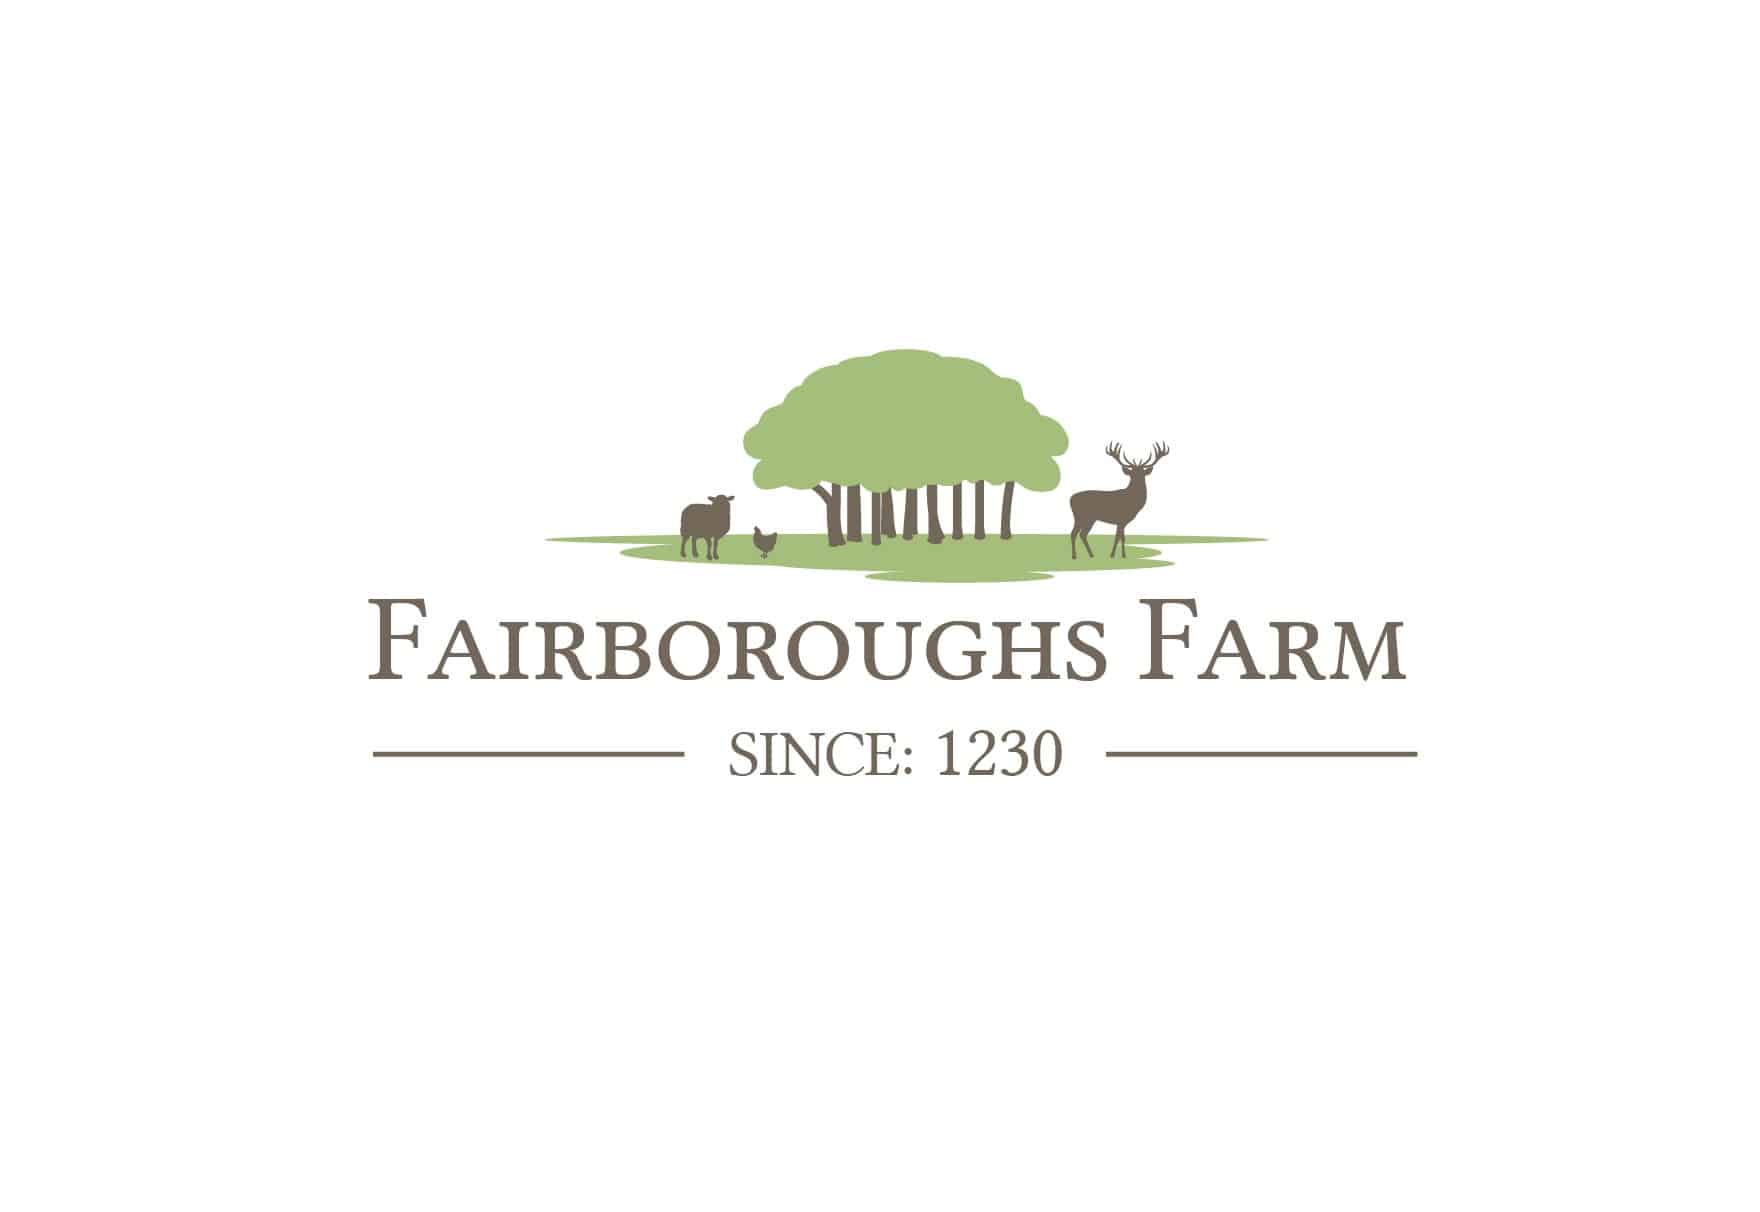 fairboroughs-farm-logo-design